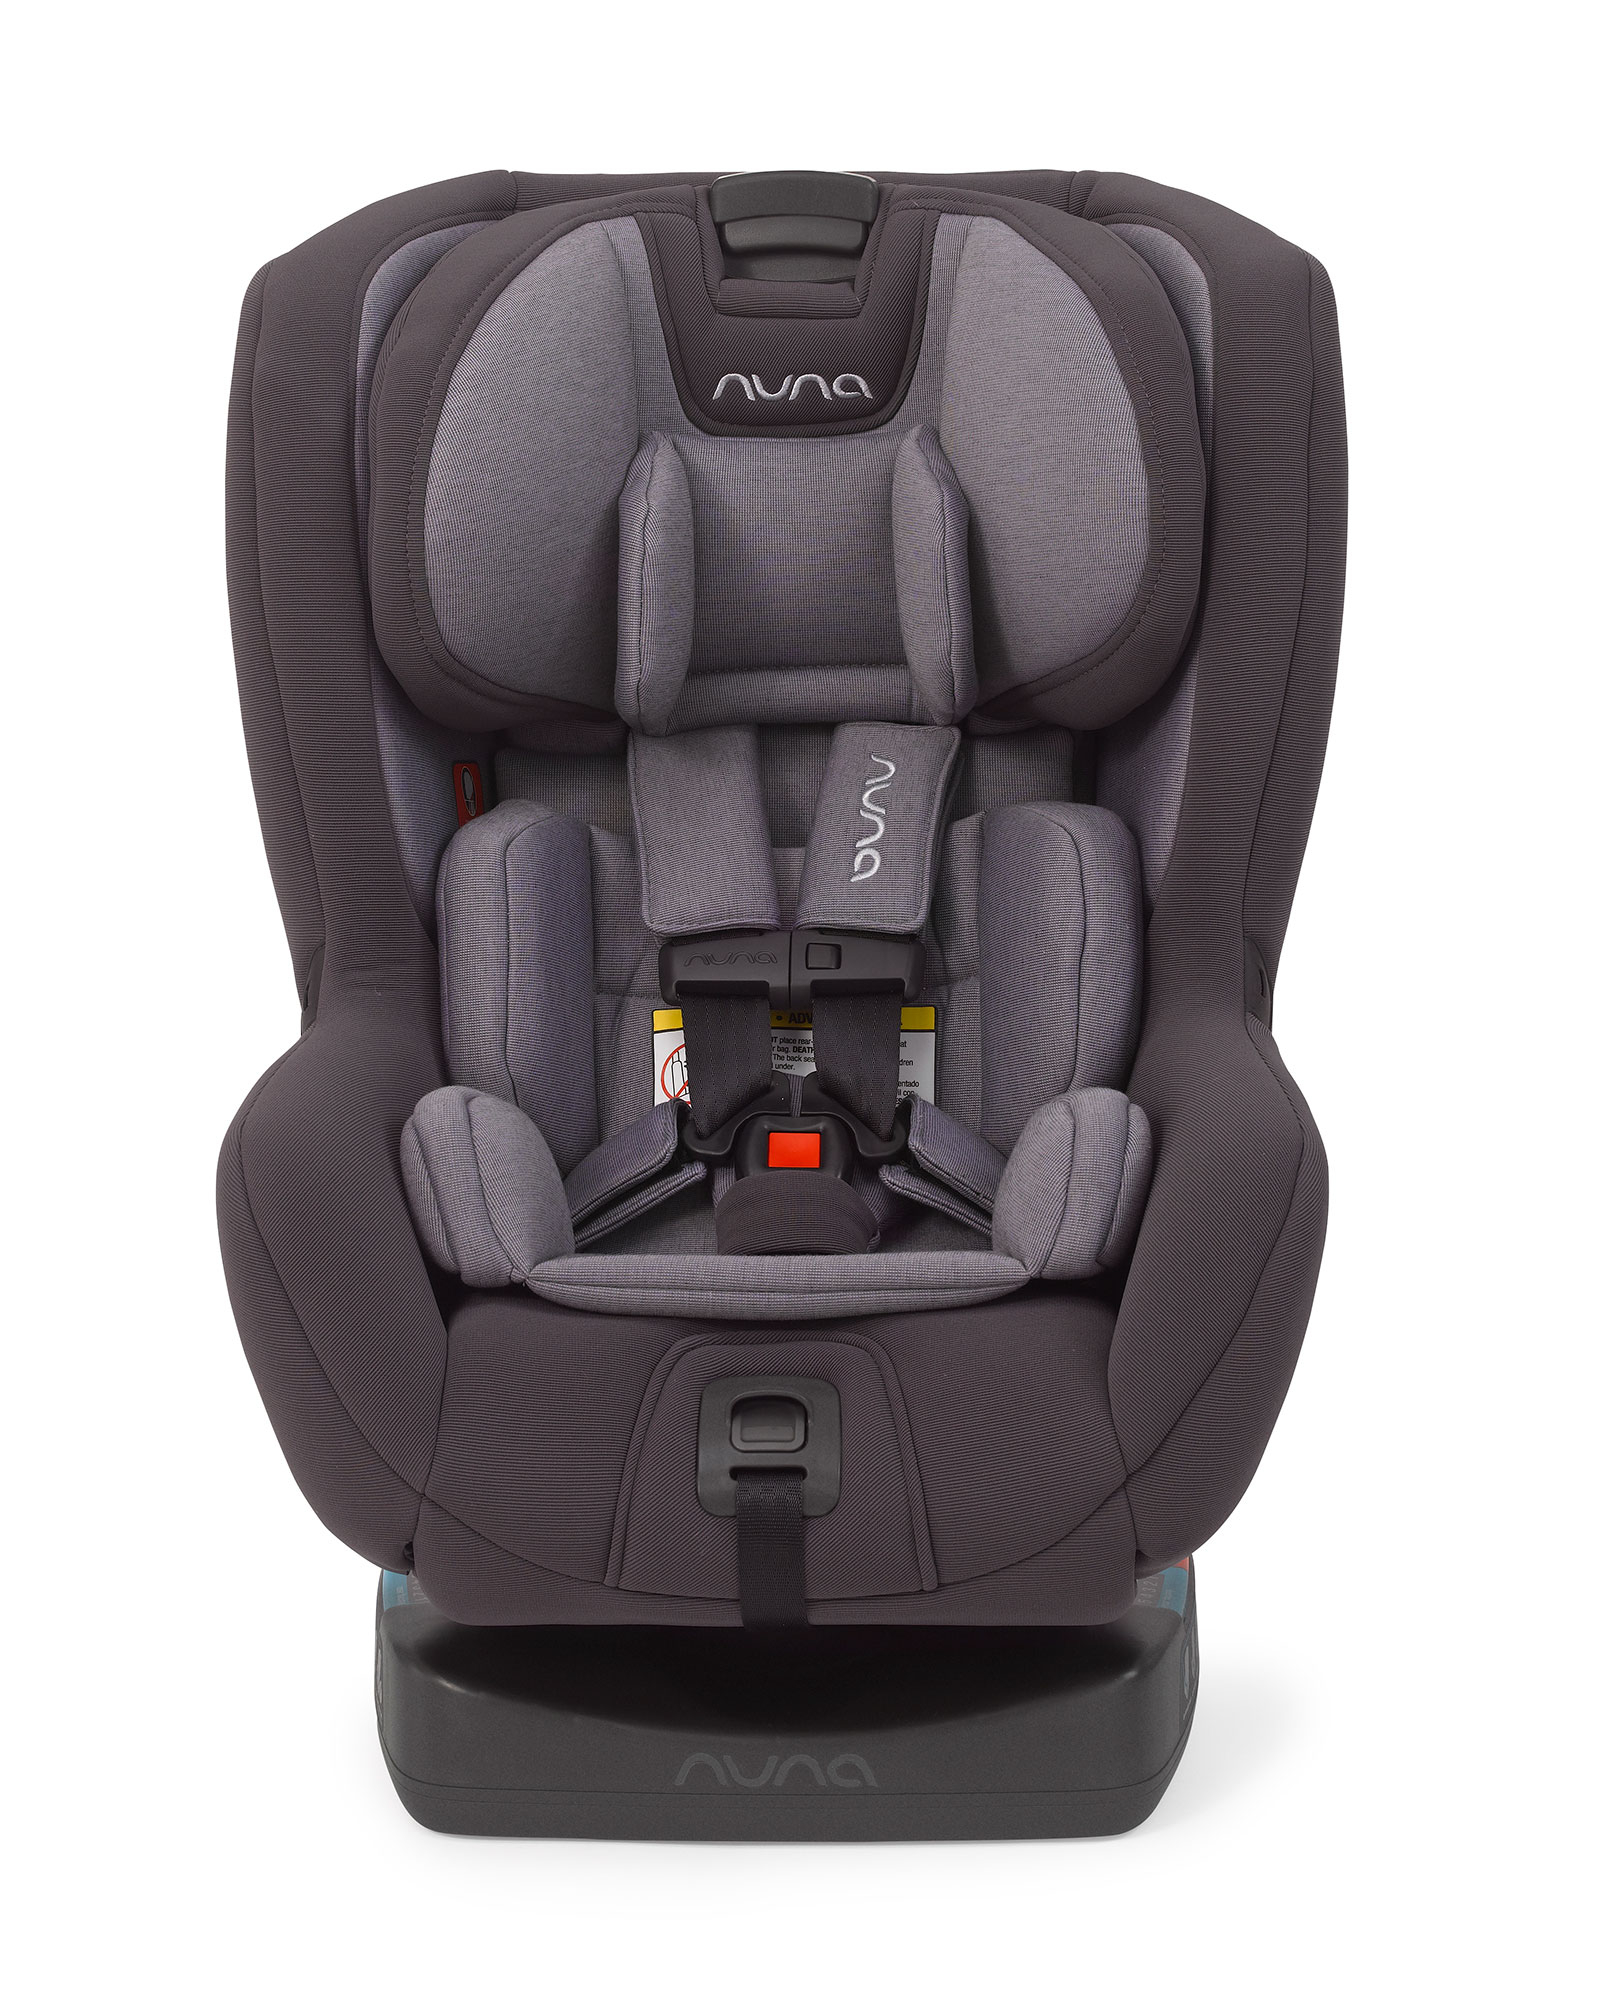 Rava Convertible Car Seat Is Incredibly Simple To Secure In Your Vehicle